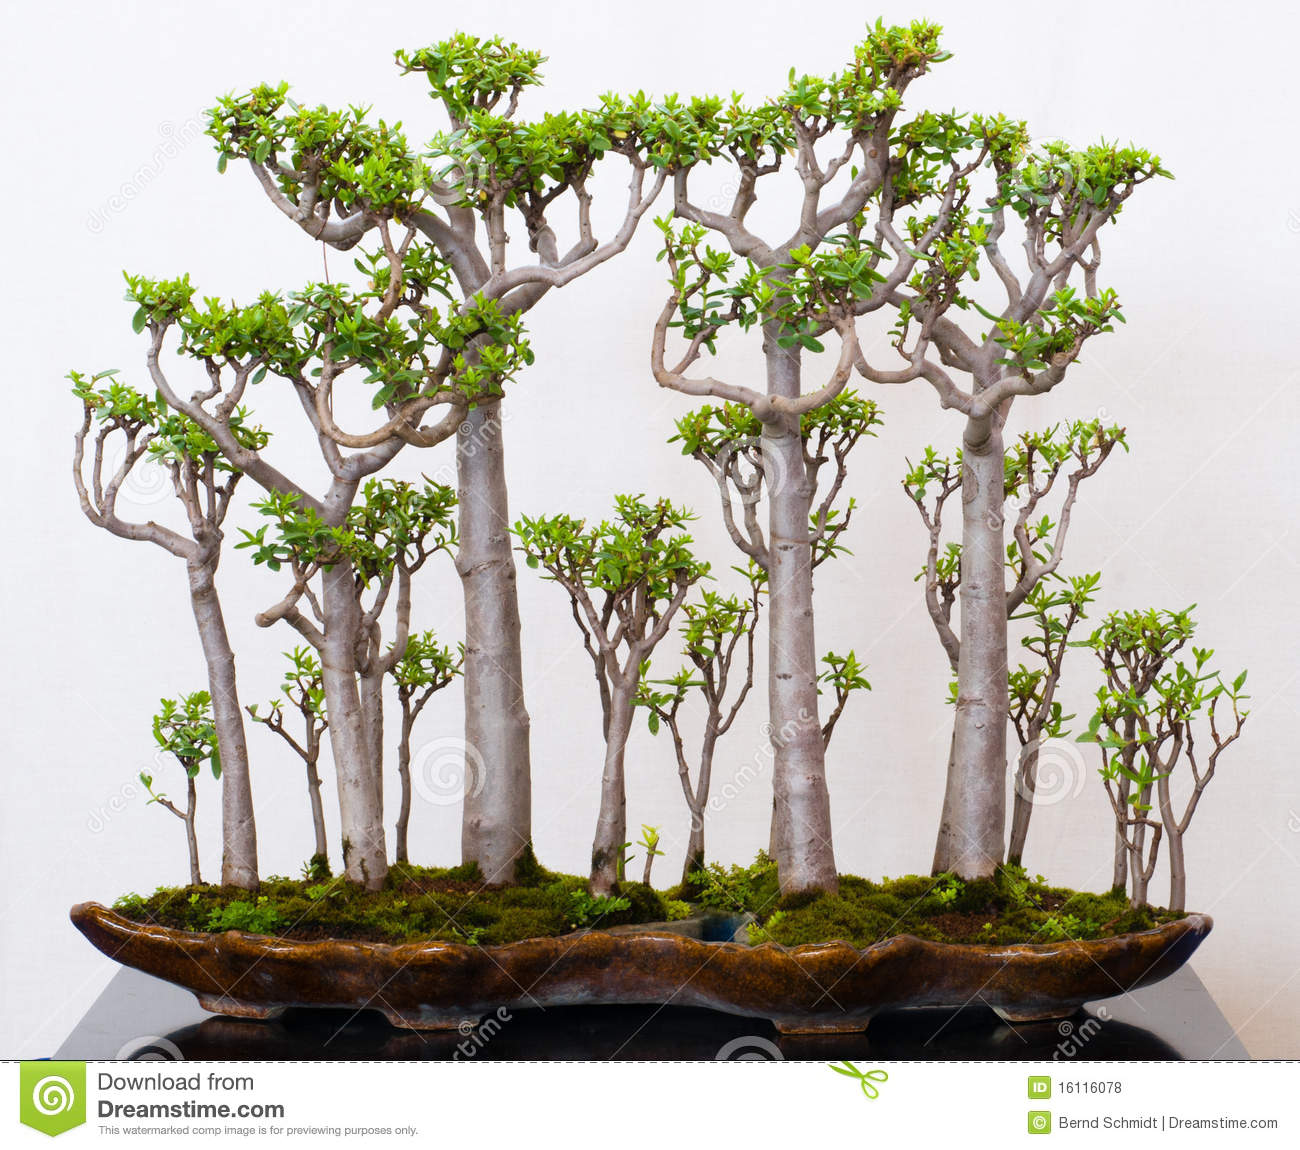 Crassula Forest Photos Free Royalty Free Stock Photos From Dreamstime